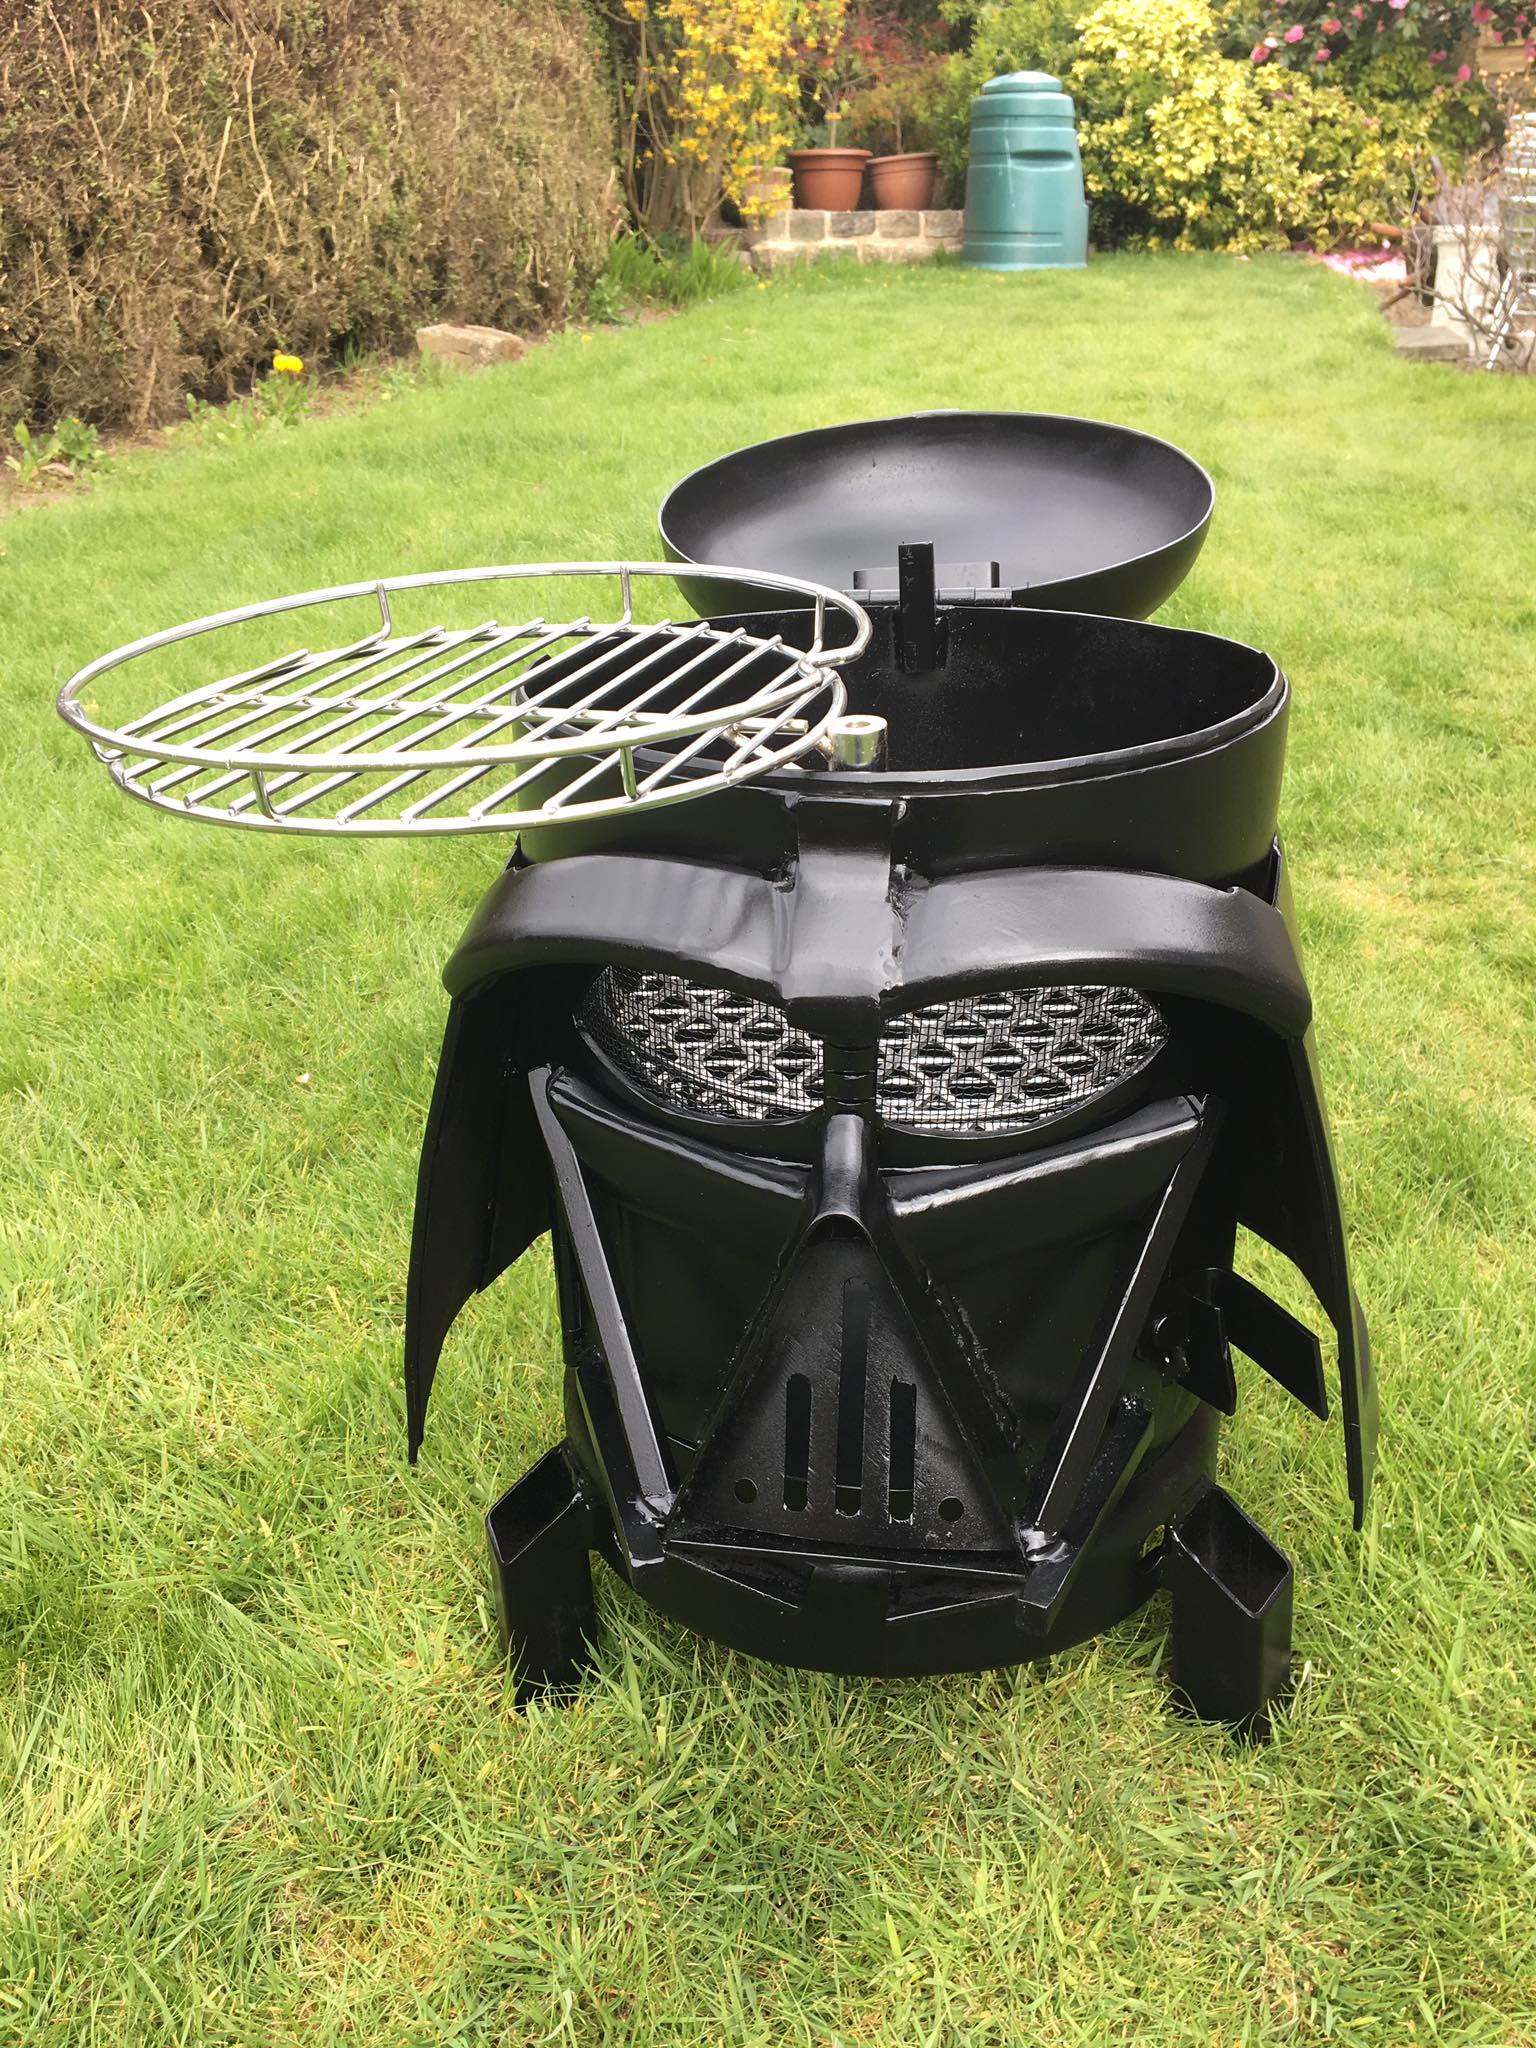 darth vader backyard grill and wood burner he u0027s more bbq now than